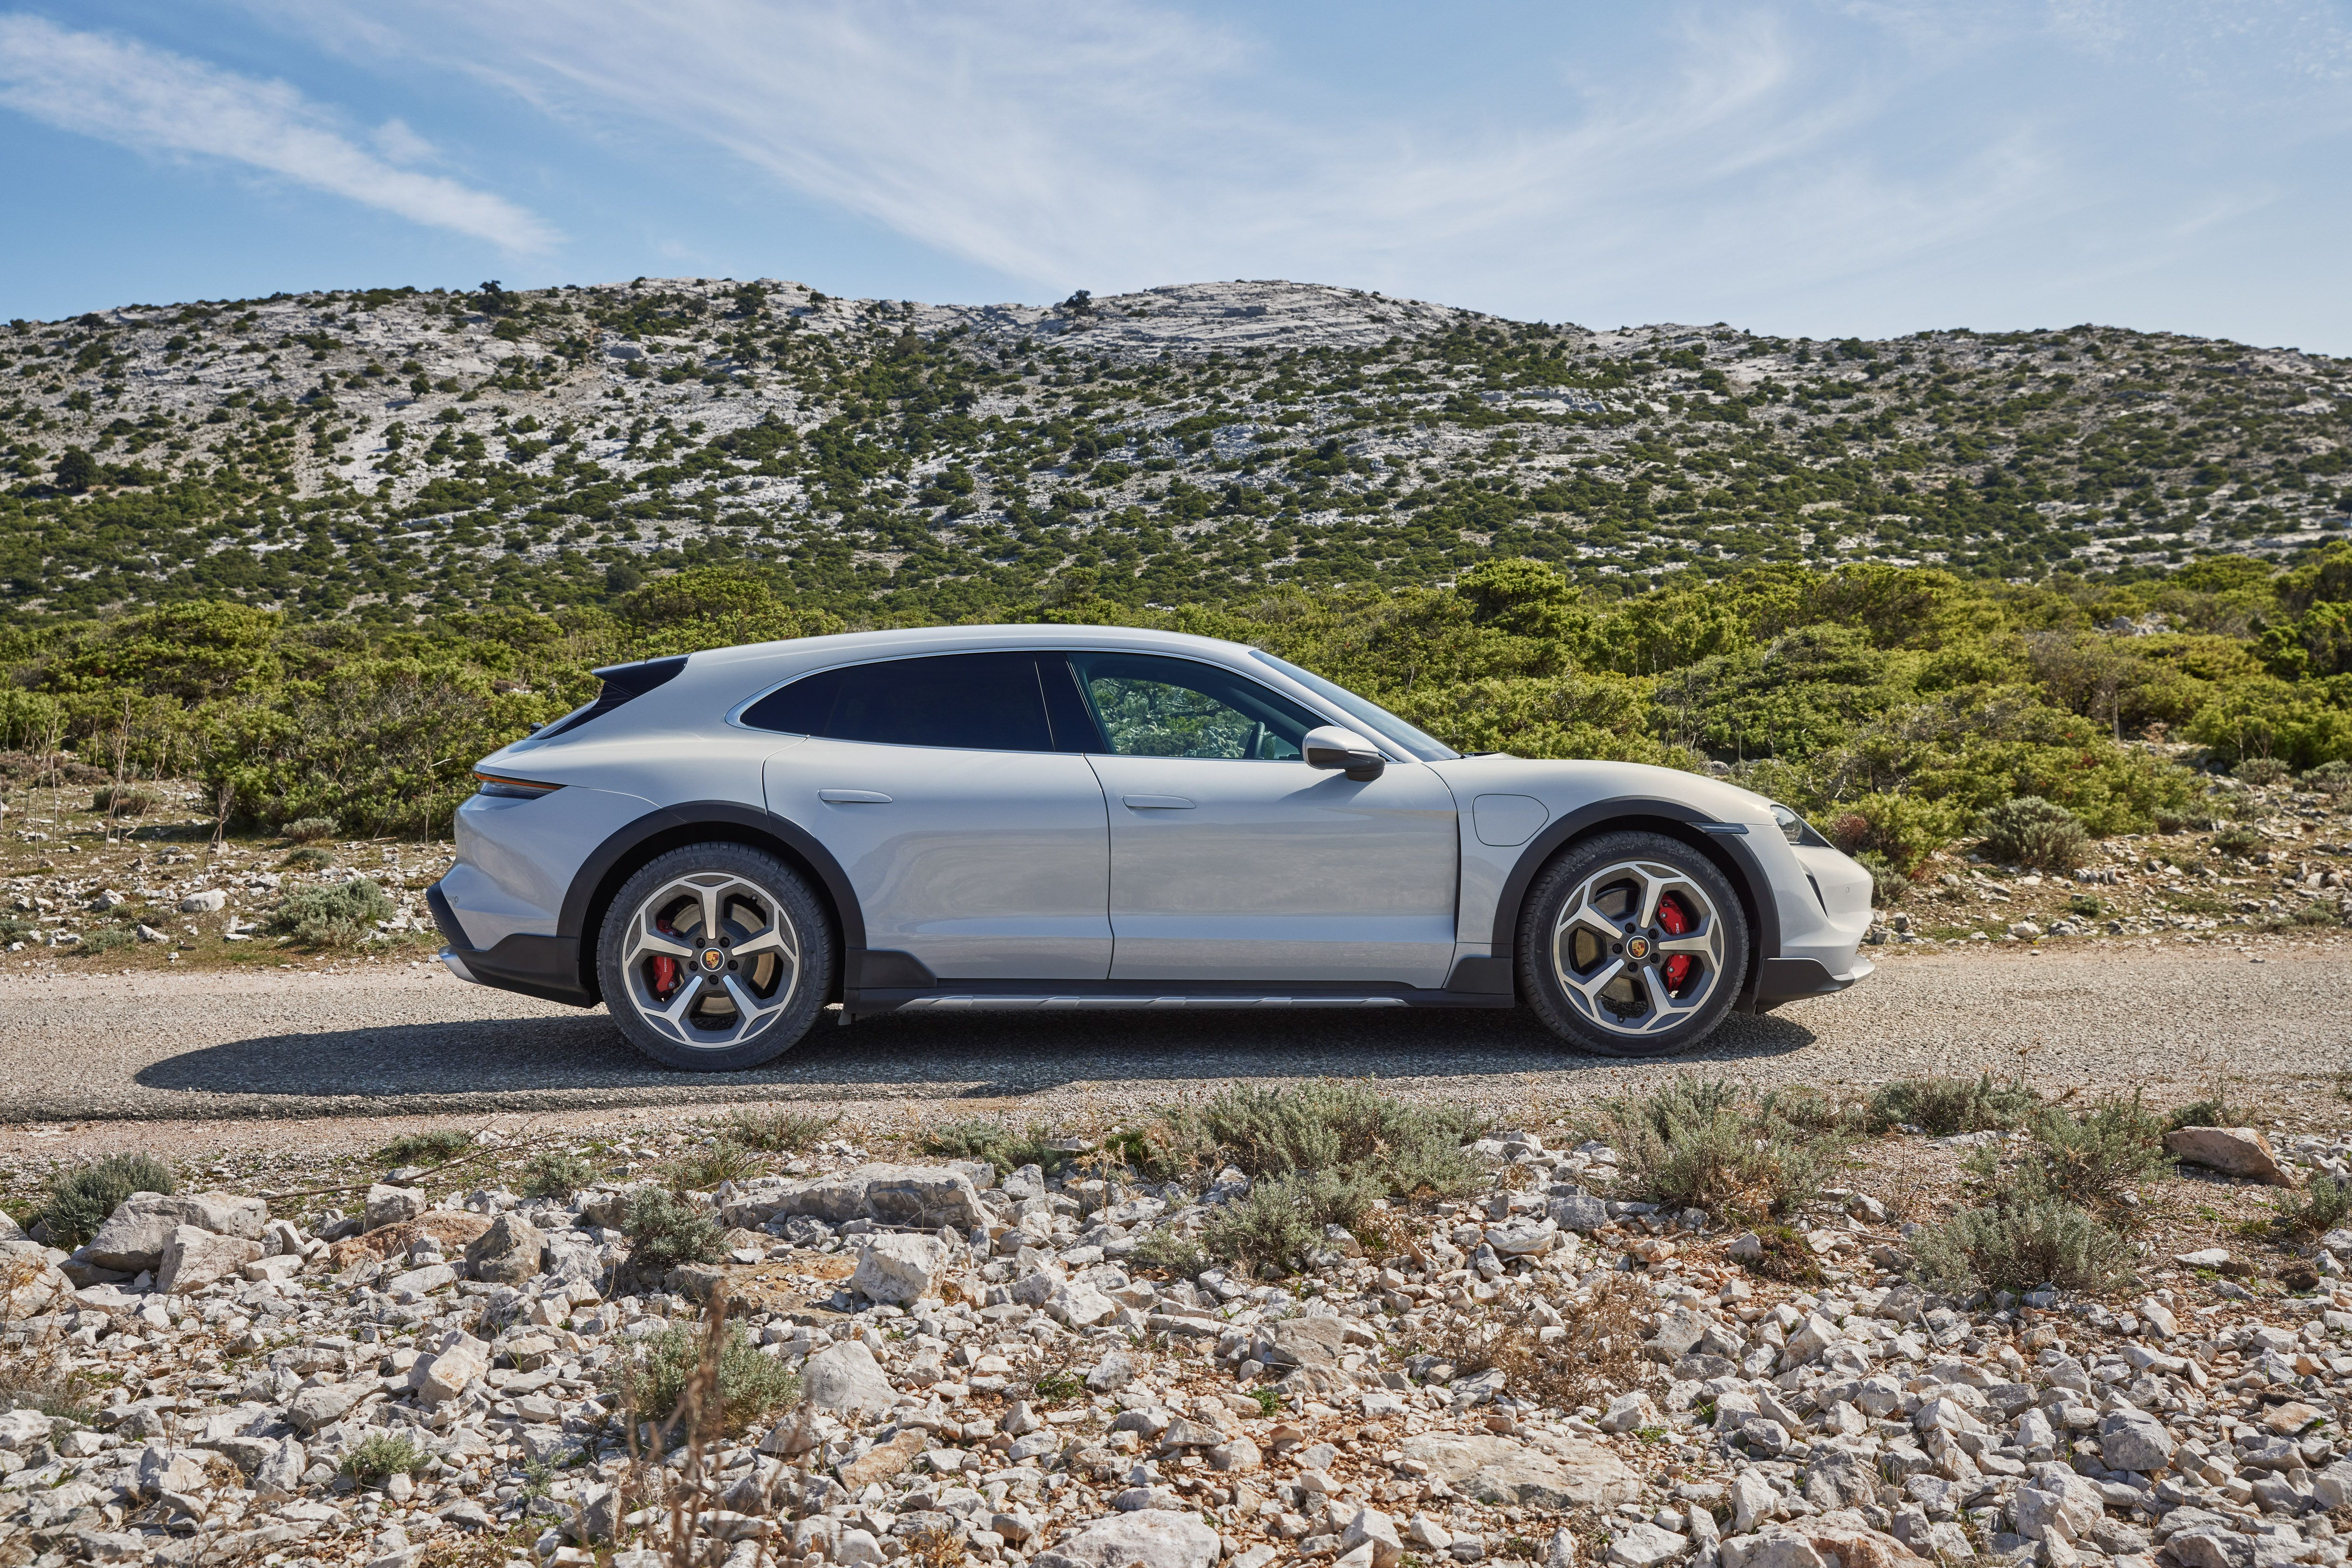 2021 Porsche Taycan Cross Turismo Gives a More Rugged Profile to the EV